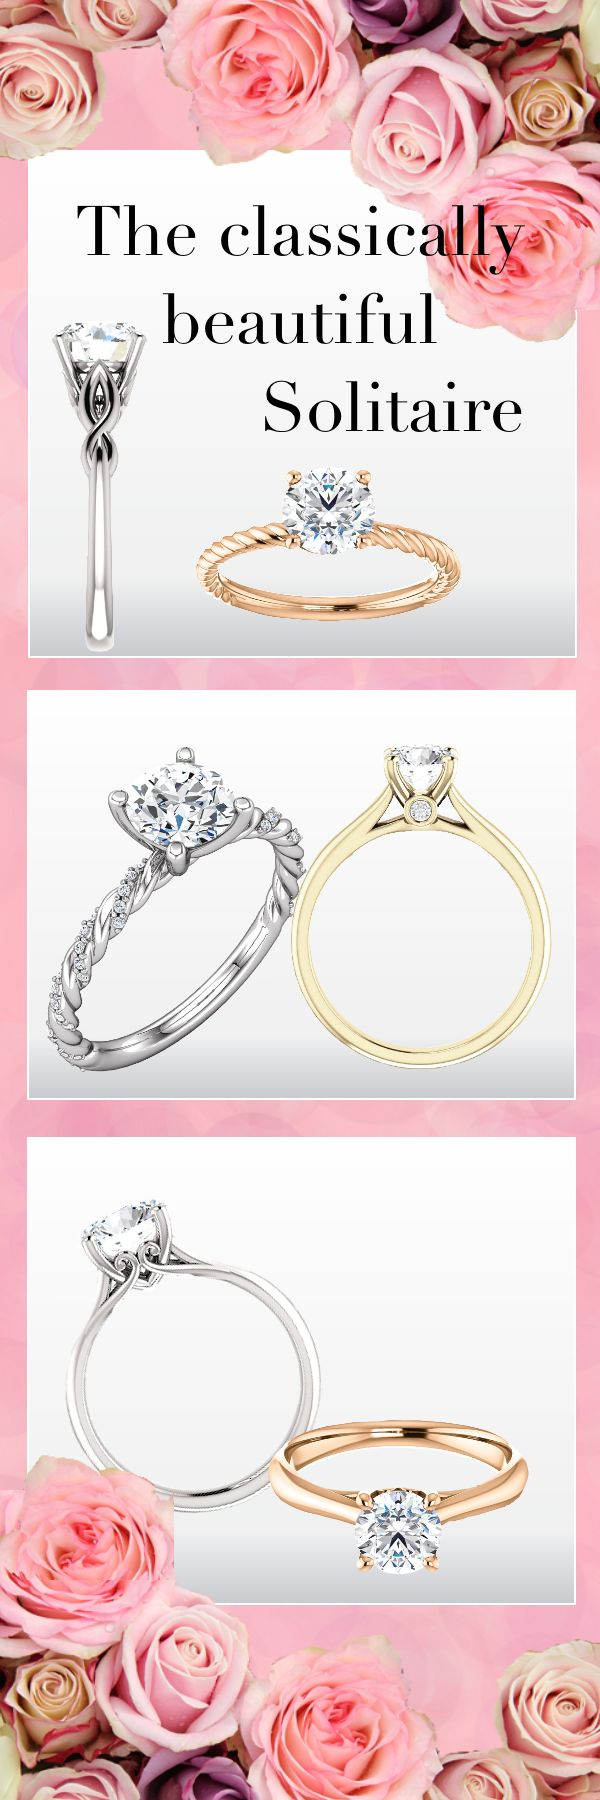 LARACI Ethical Engagement Rings. 100% Conflict Free Moissanite Engagement Rings Recycled Meta. Solitaire Engagement Rings